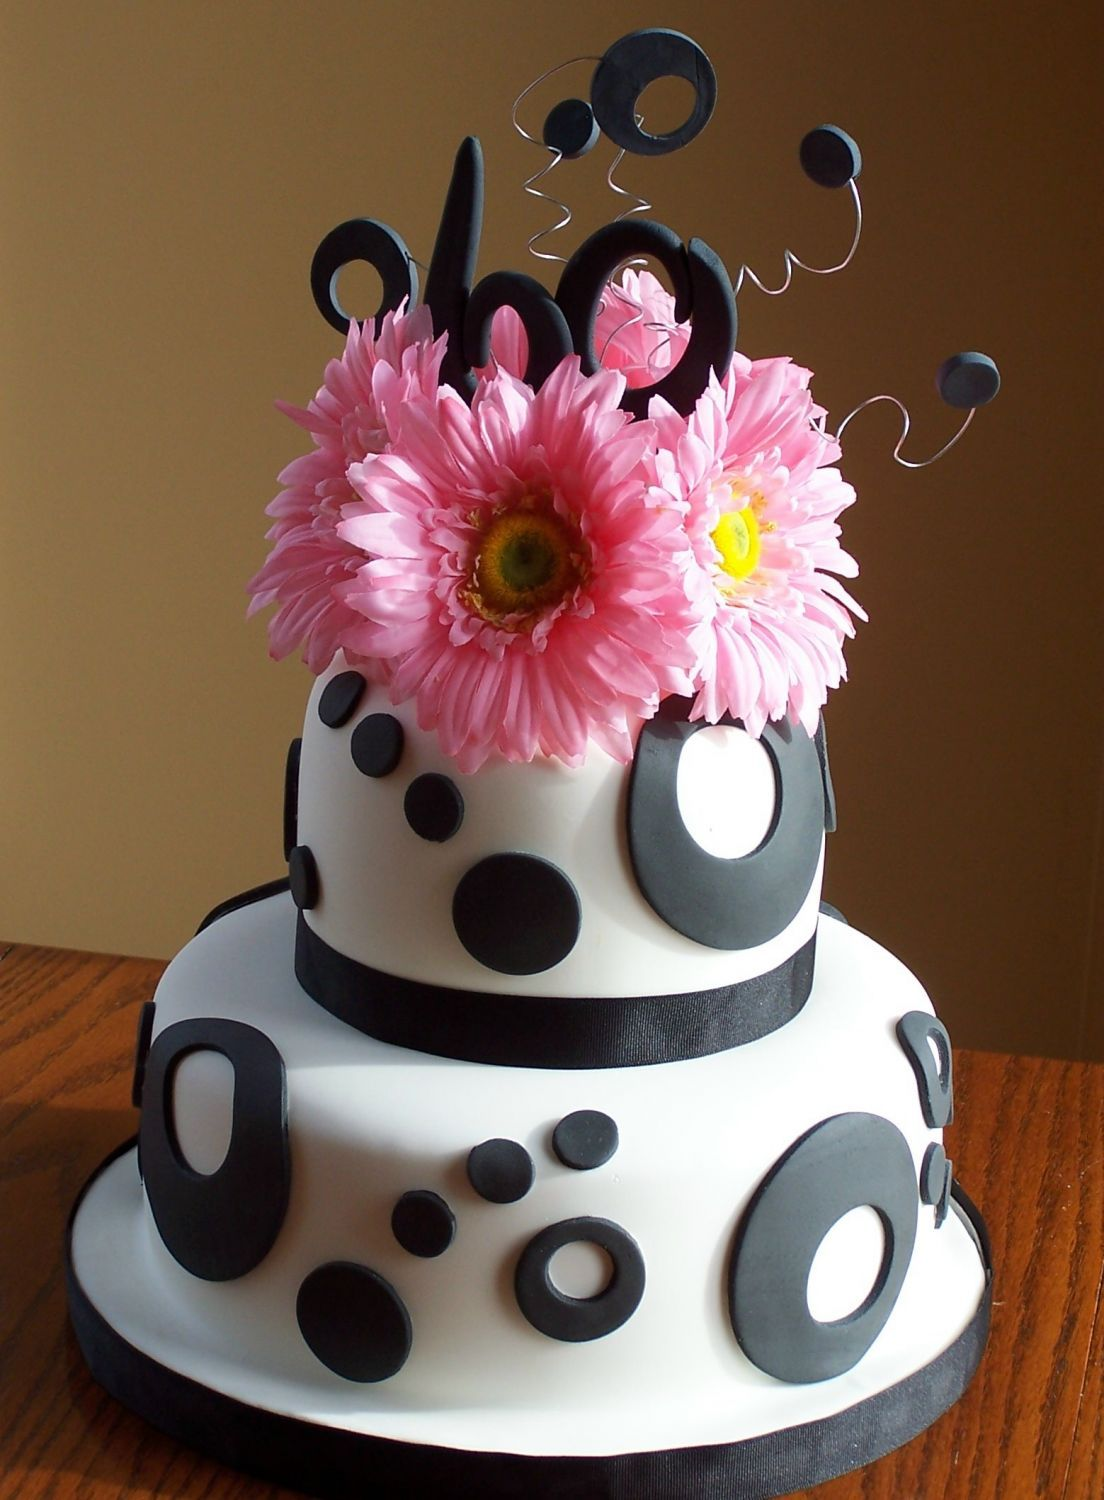 Black and White 60th Birthday Cake Made for a 60th